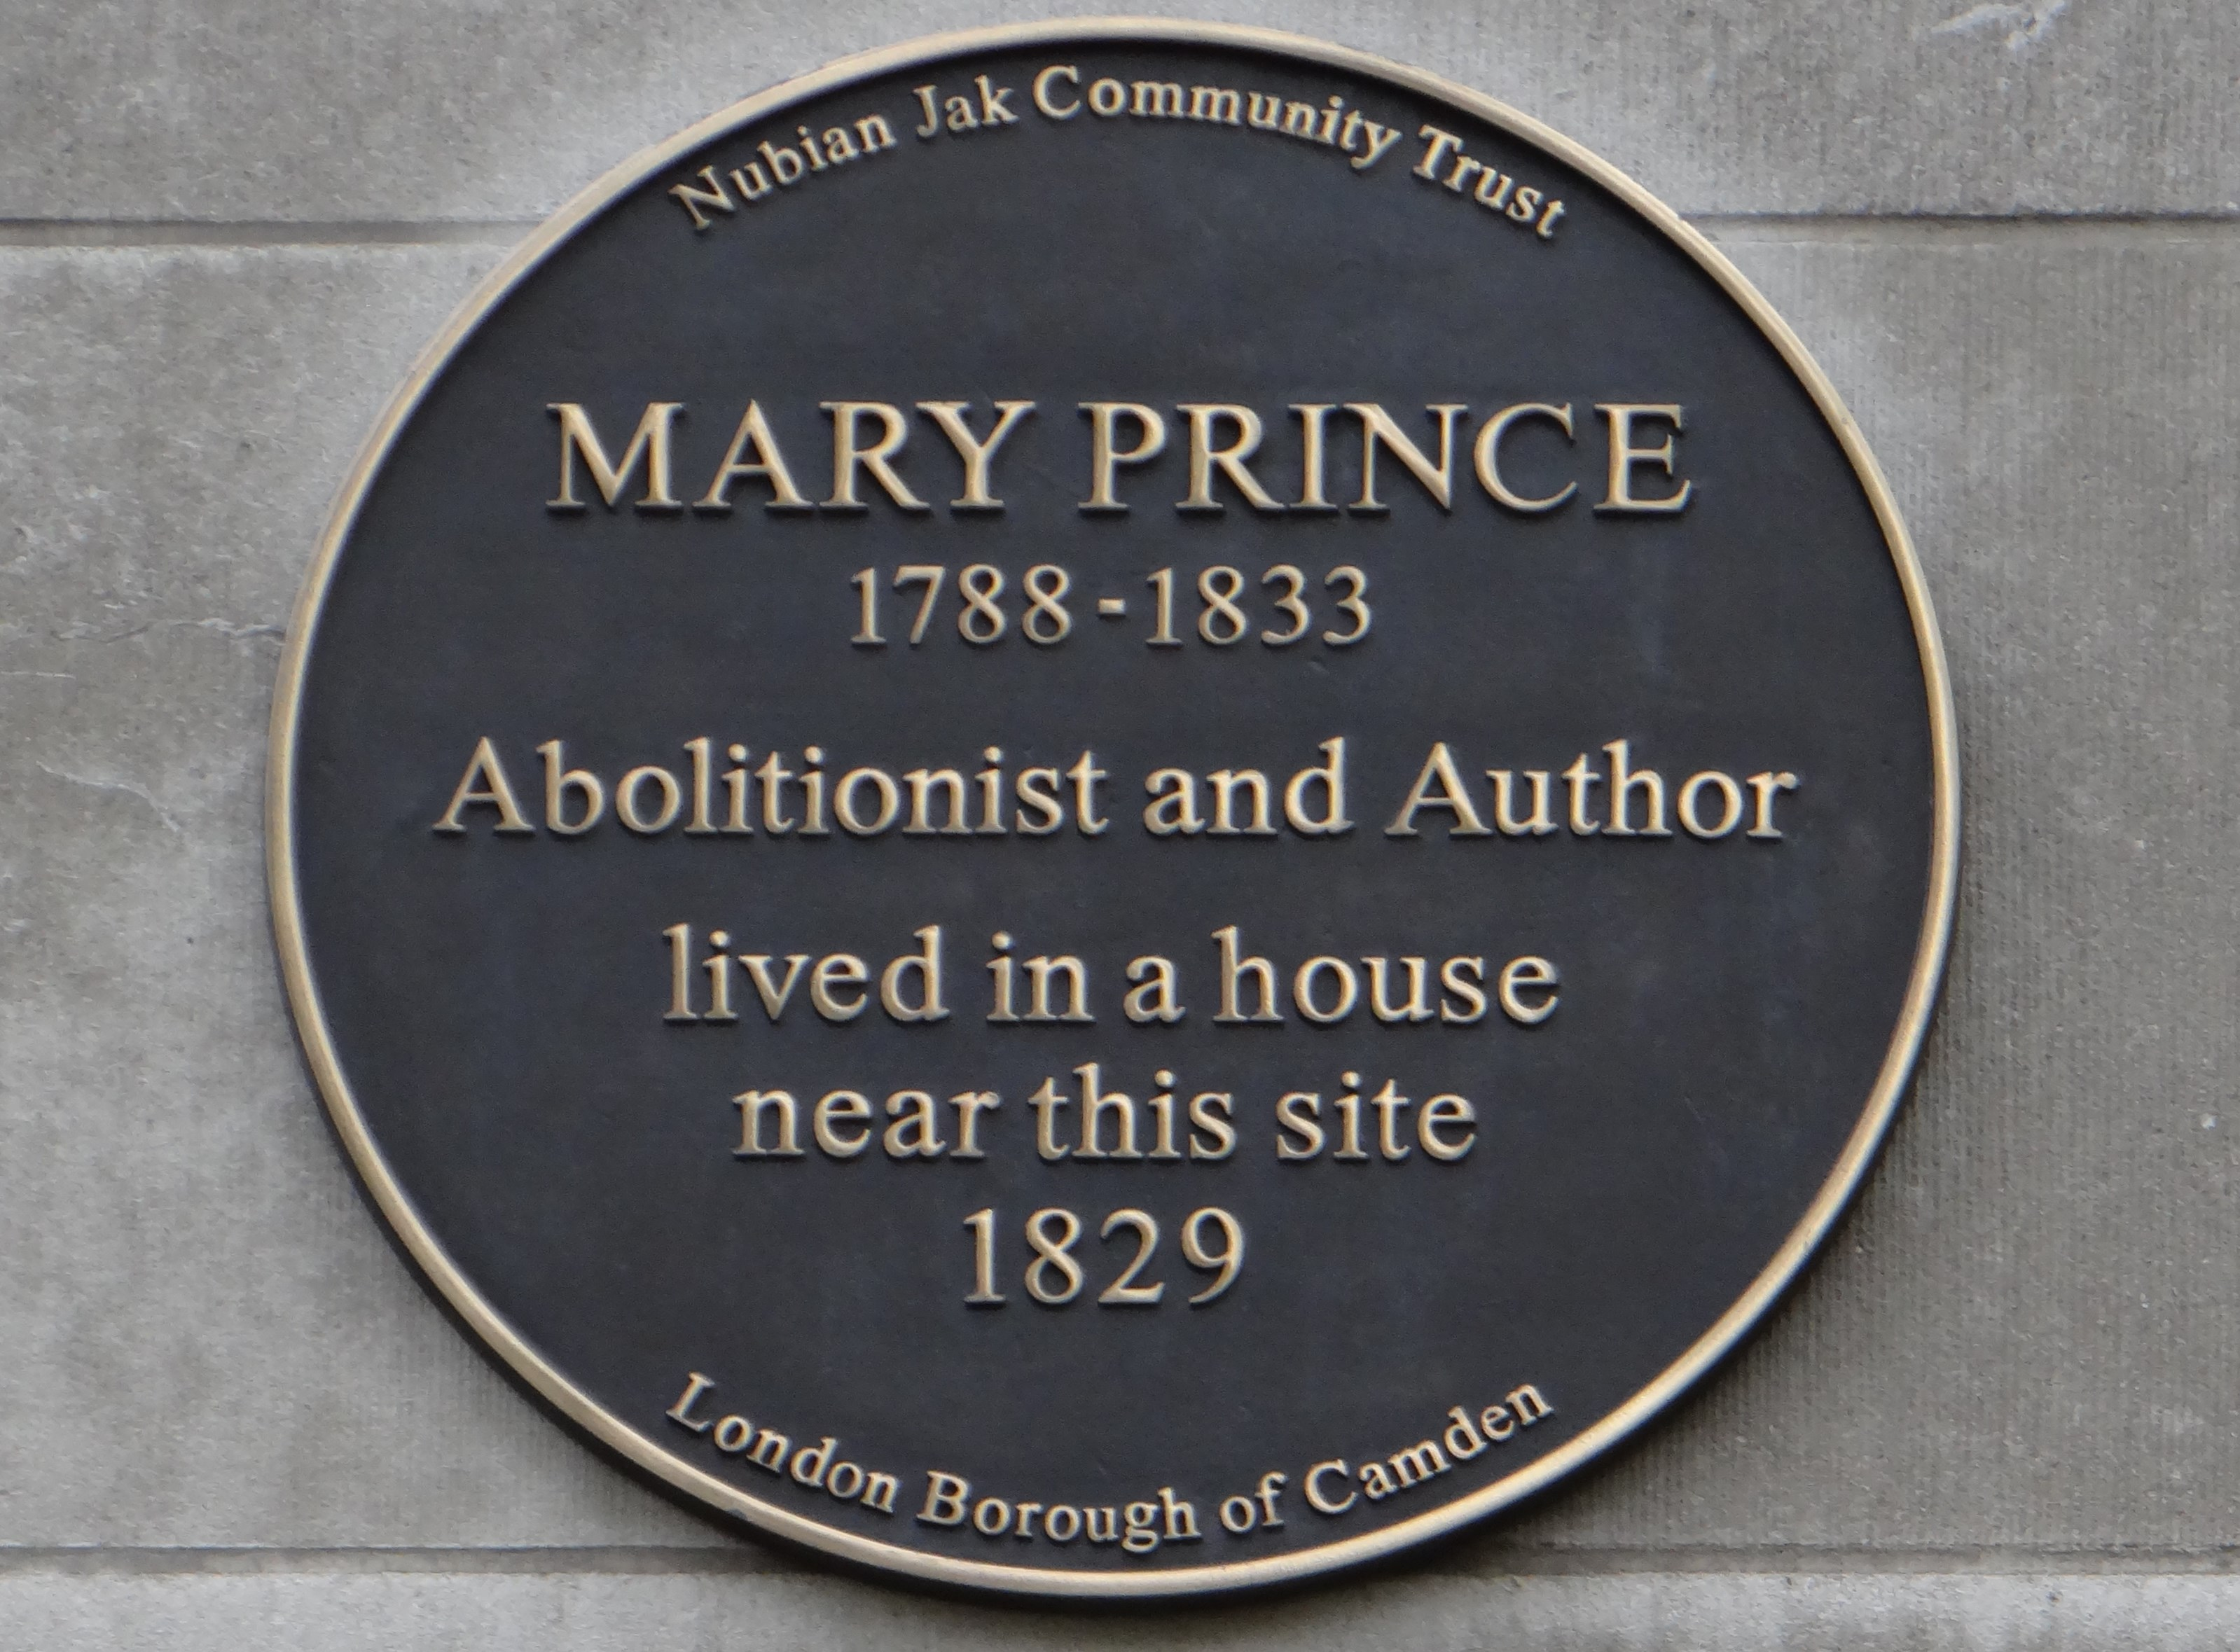 the history of mary prince essays Writing spaces as island formation: intersections of design, multimodality, and space in writing studies pp 275-283 | doi: 101353/cea20170024 · lauren garskie html icon html pdf icon download pdf full access positionality and participation: engaging saudi women in the second language classroom pp 284-.